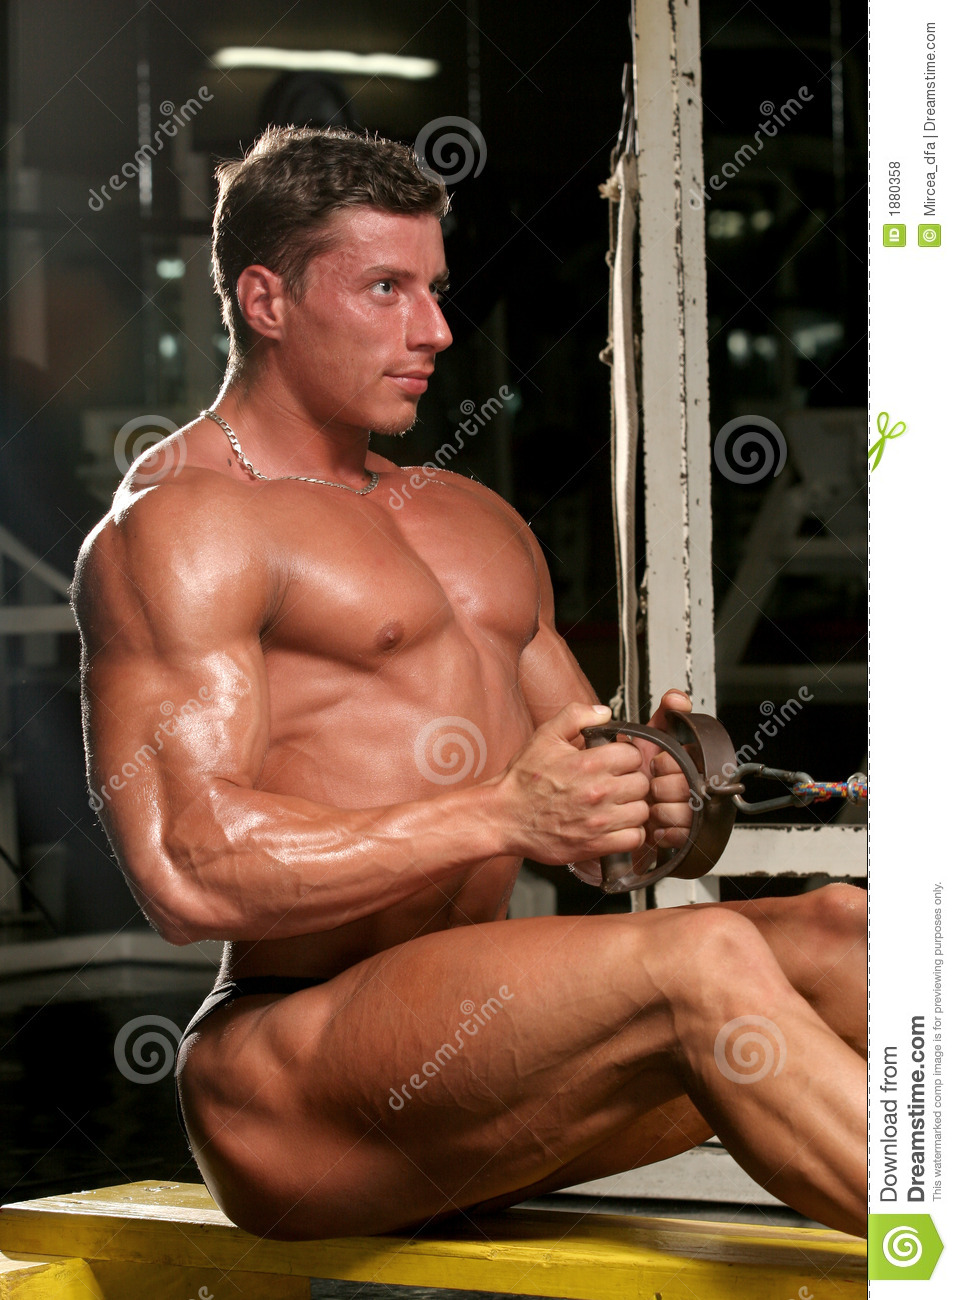 image Straight male body builders hot men for